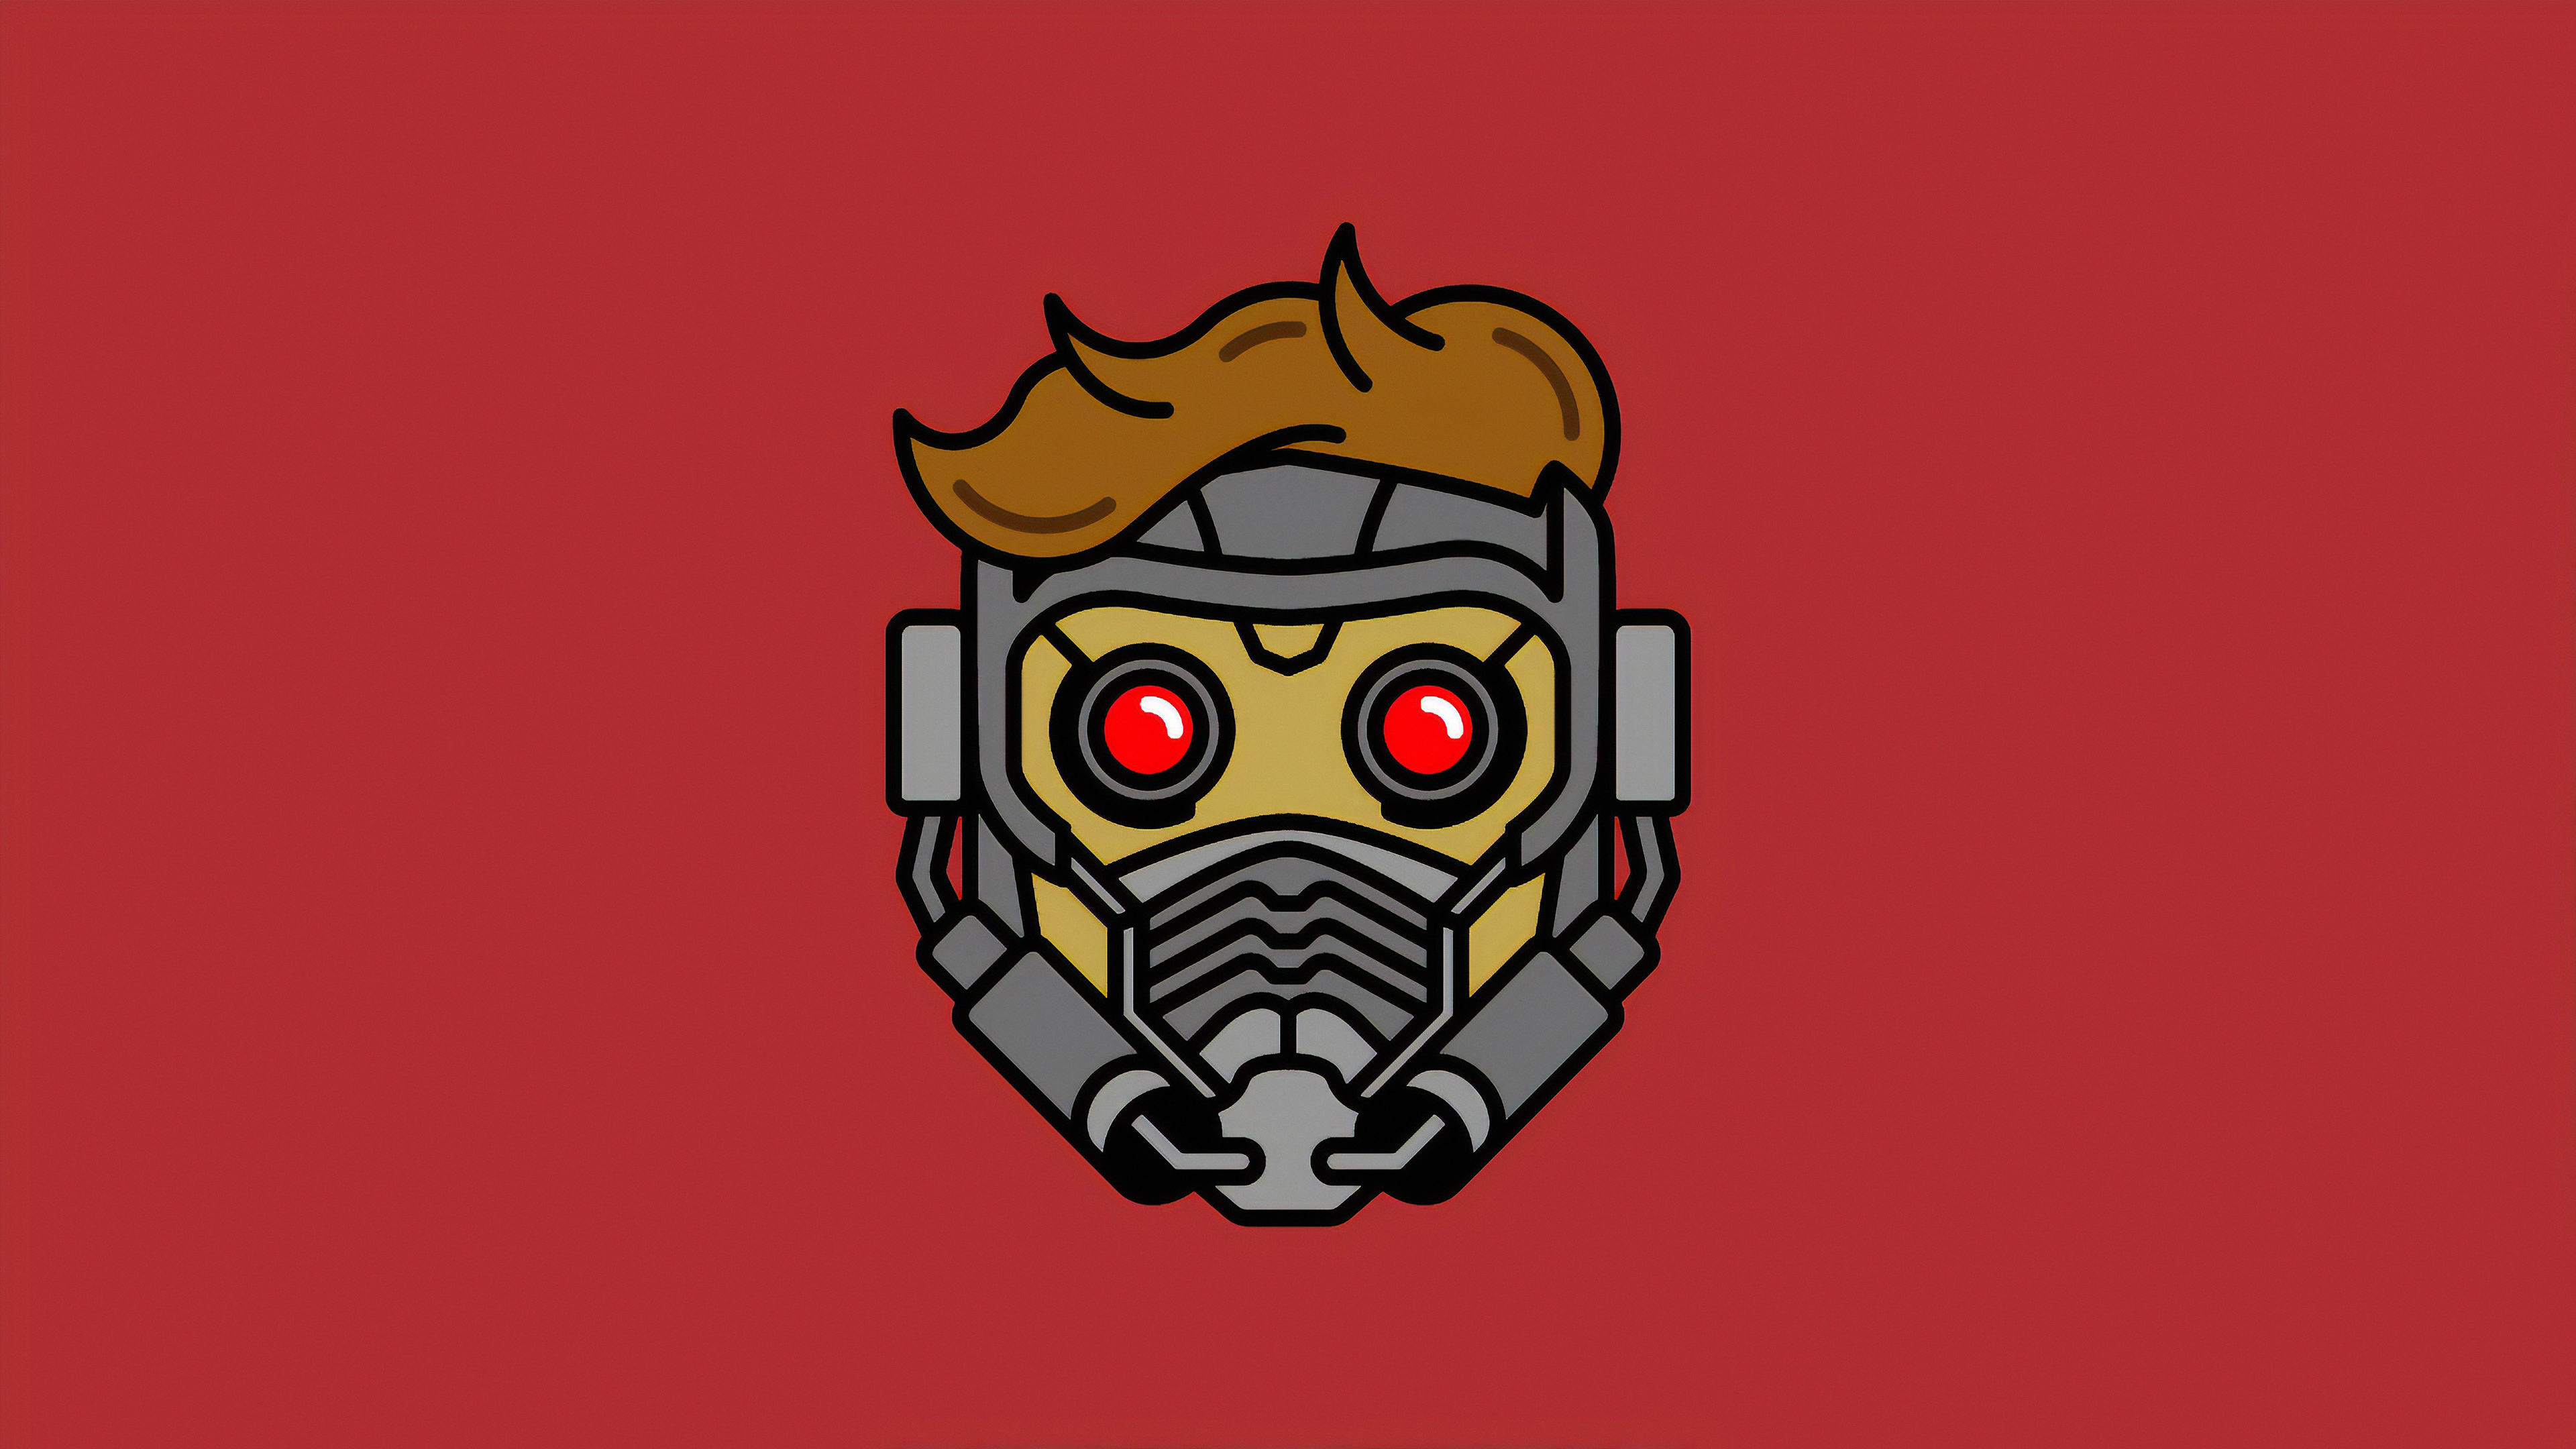 star lord mask minimal 1568054852 - Star Lord Mask Minimal - superheroes wallpapers, star lord wallpapers, hd-wallpapers, digital art wallpapers, behance wallpapers, artwork wallpapers, 4k-wallpapers